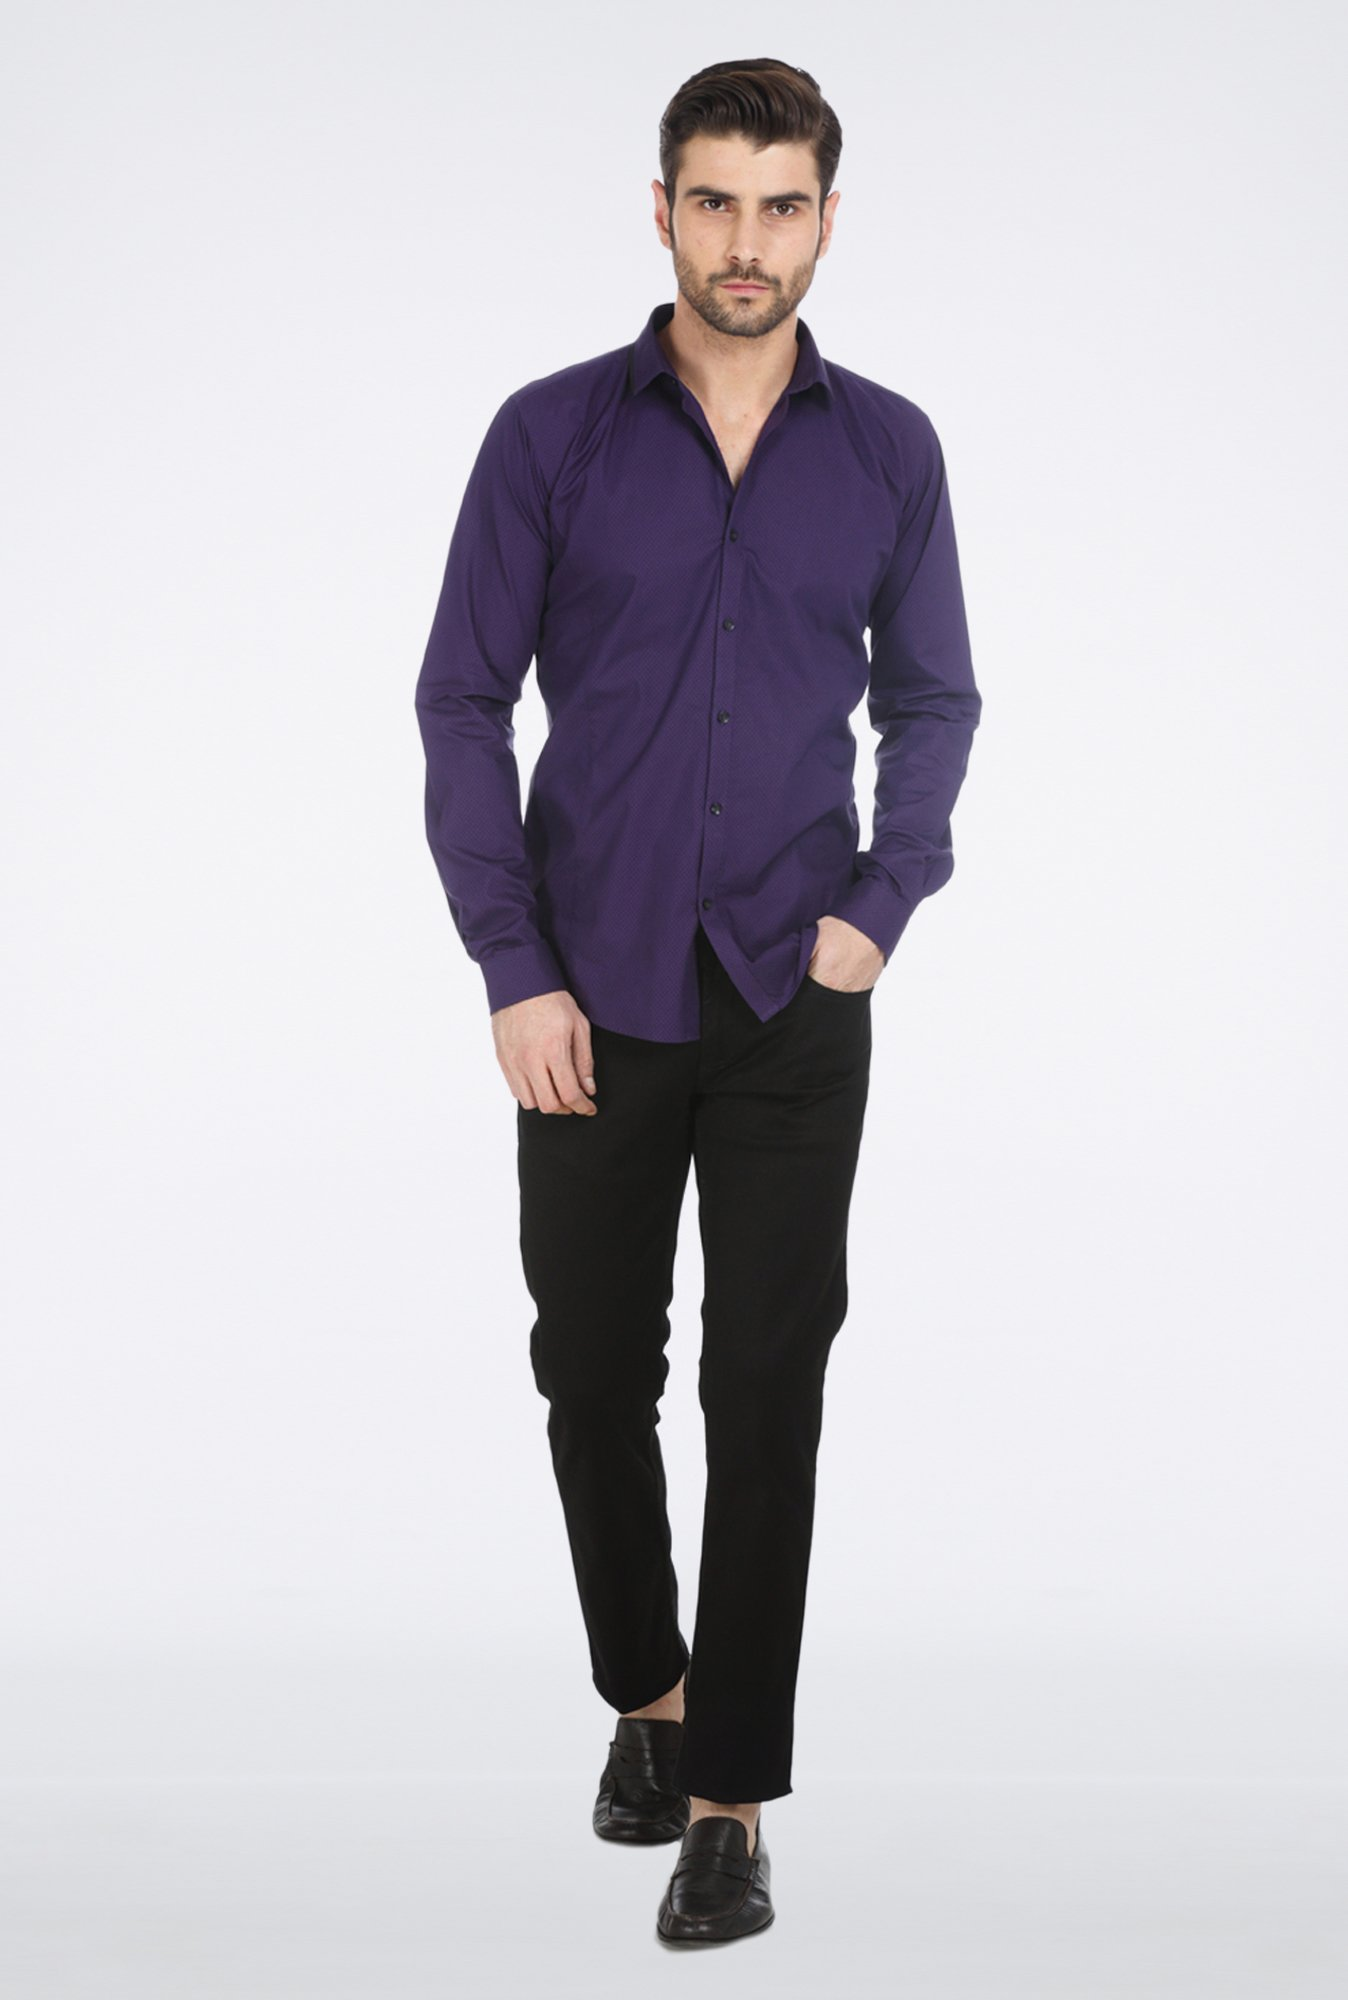 Basics Purple Slim Fit Formal Shirt